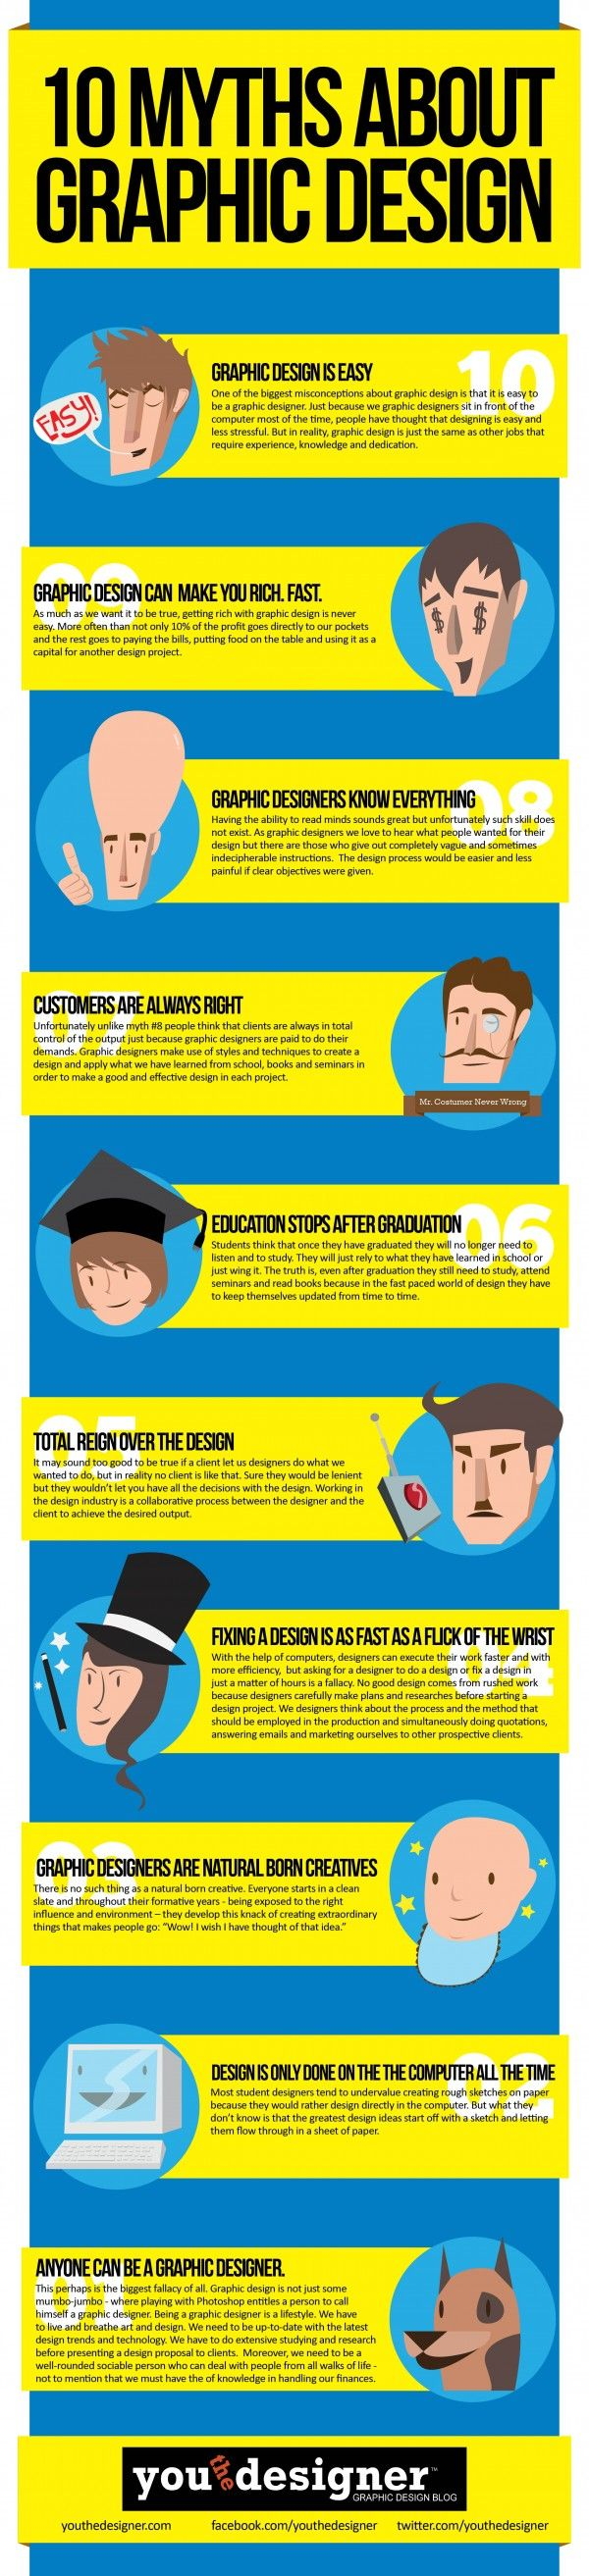 10 Myths about graphic design #infographic #design #myth #in